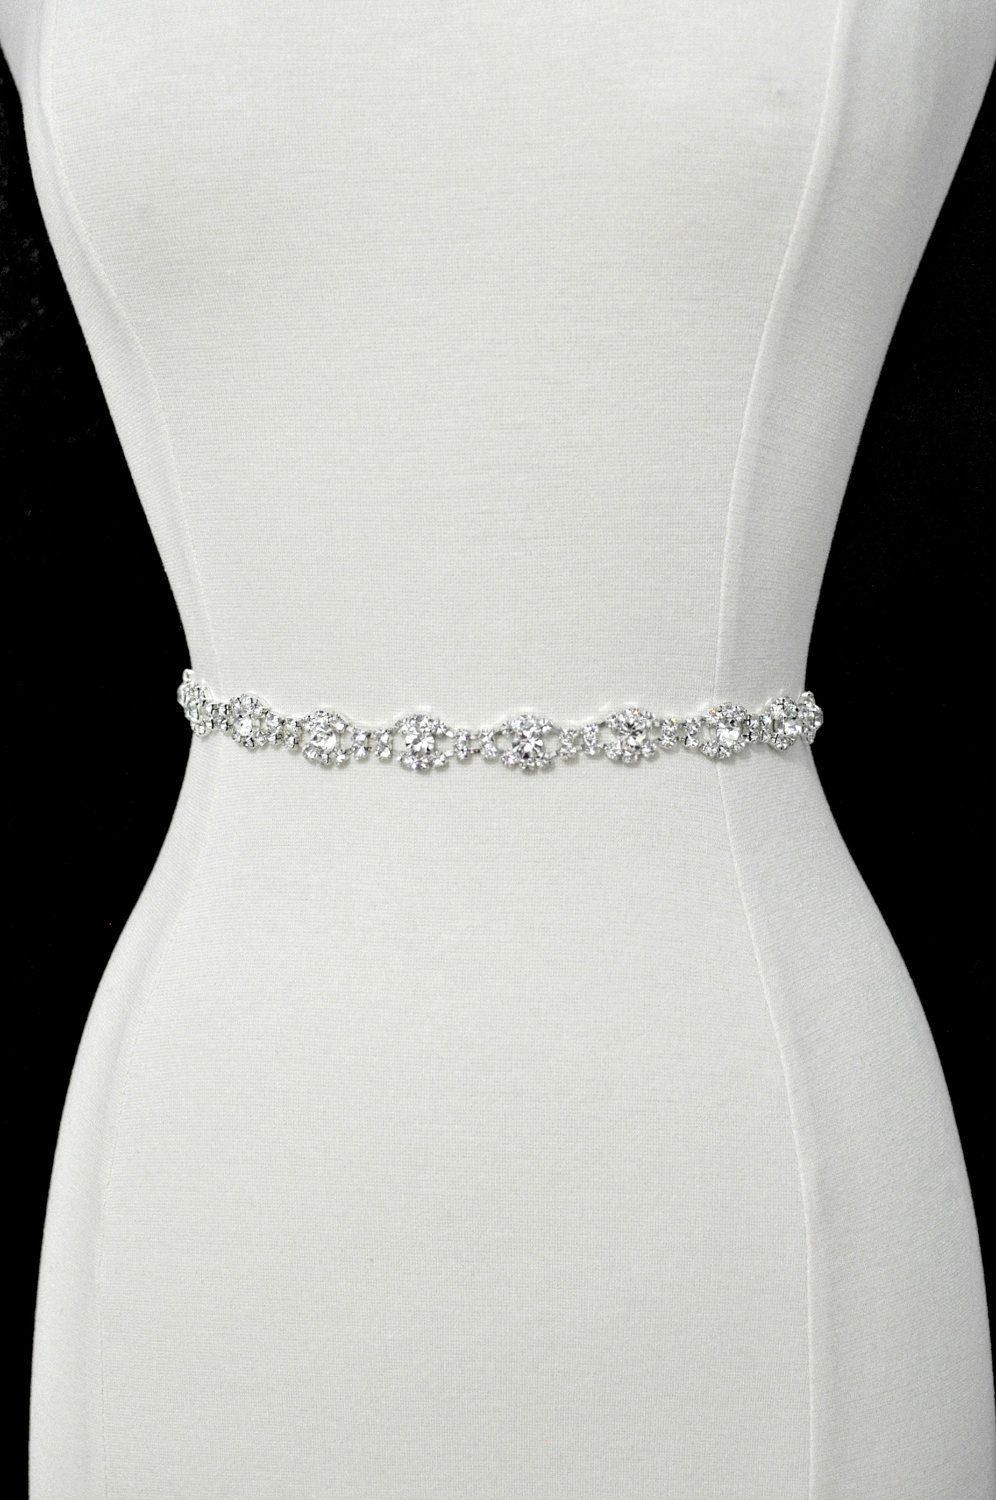 e12bfeeaa706 SALE All around bridal belt Wedding sashes and belts Wedding dress belt  Thin bridesmaid belt beaded | Products in 2019 | Wedding dresses, Wedding  sash, ...